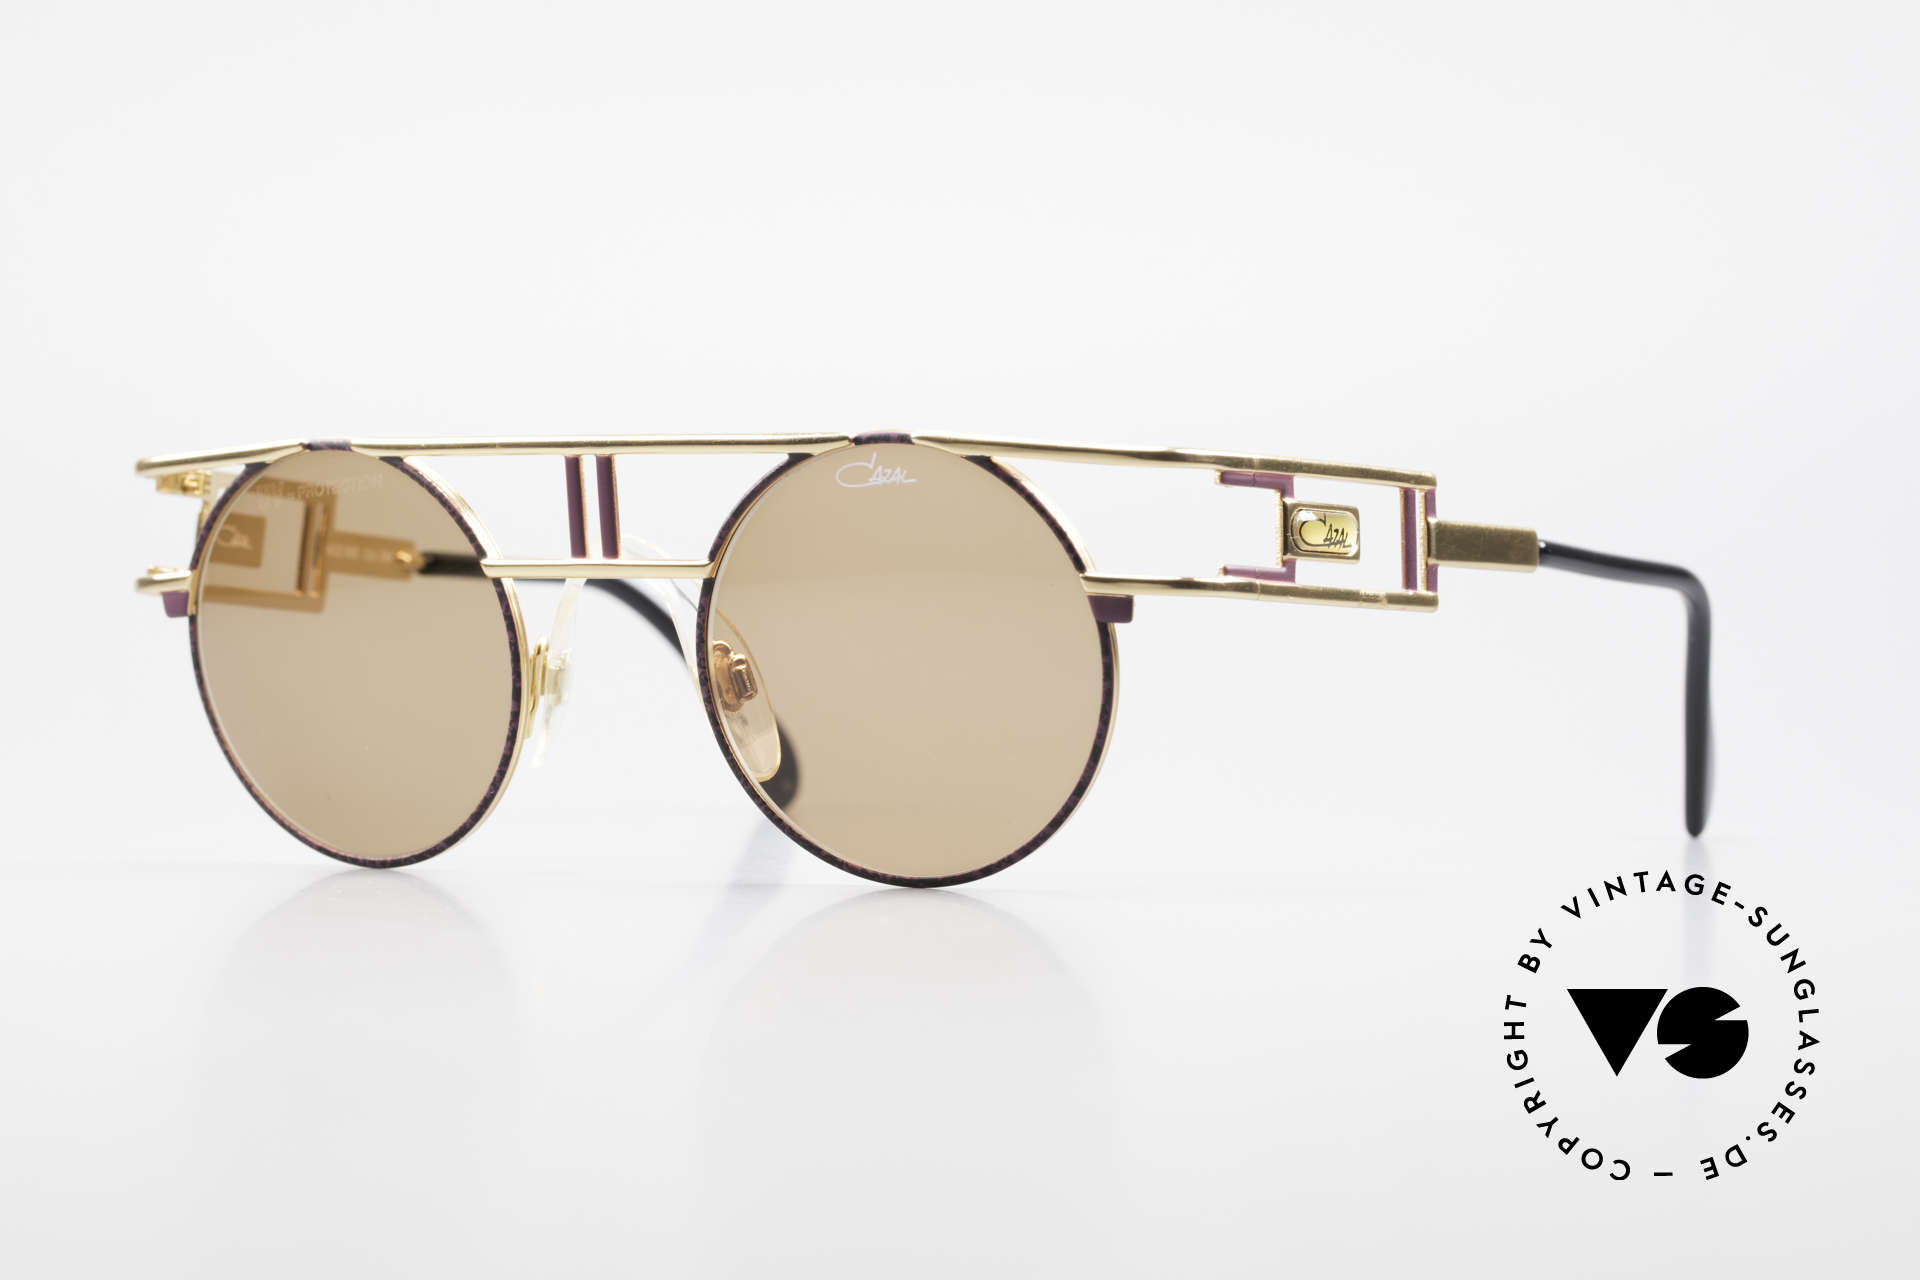 Cazal 958 1990's Vanilla Ice Sunglasses, famous designer sunglasses by CAZAL from 1991, Made for Men and Women